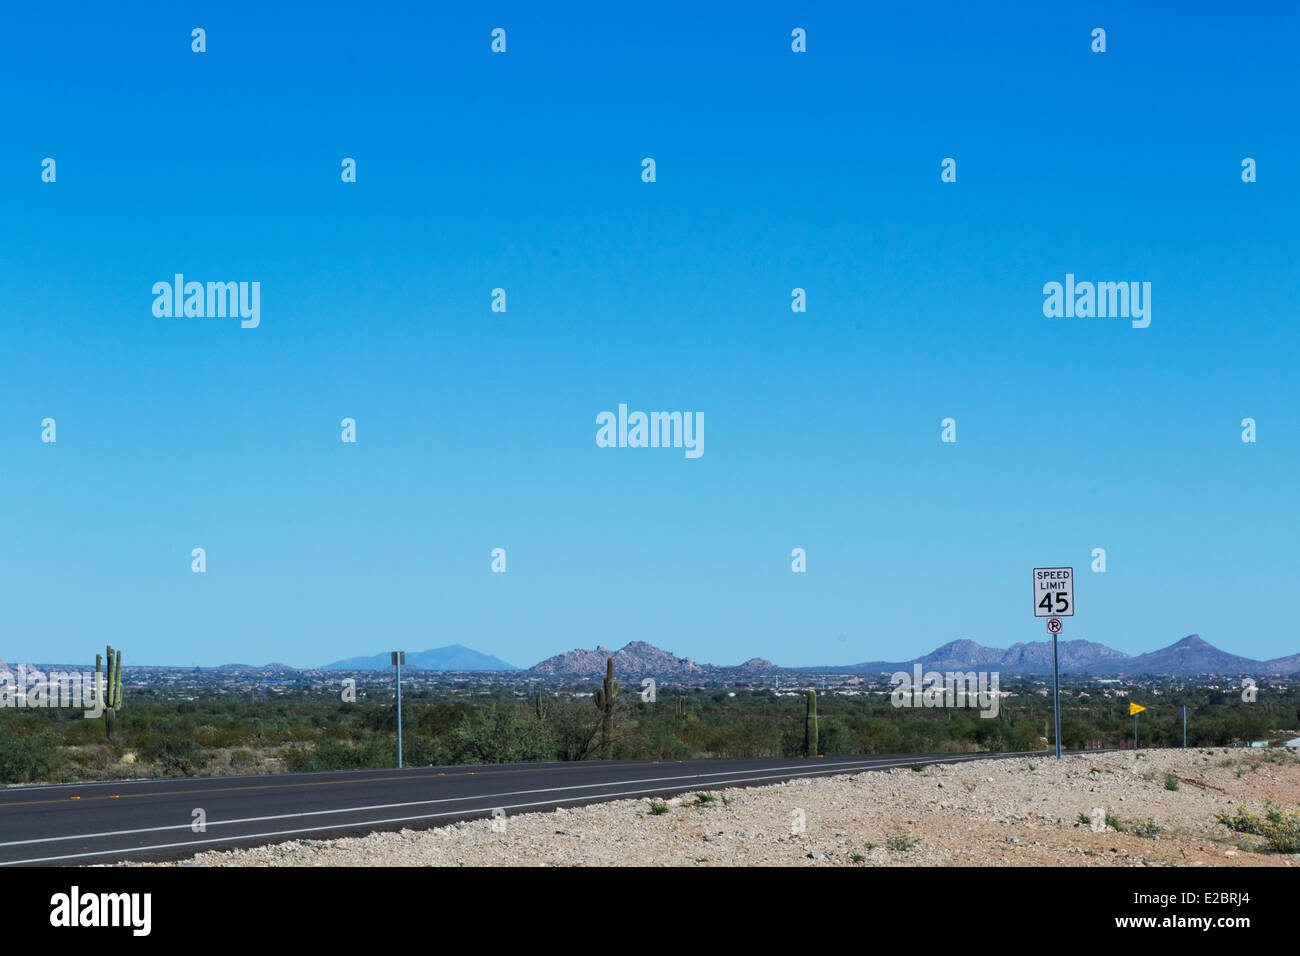 Desert road with speed limit and mountains Stock Photo